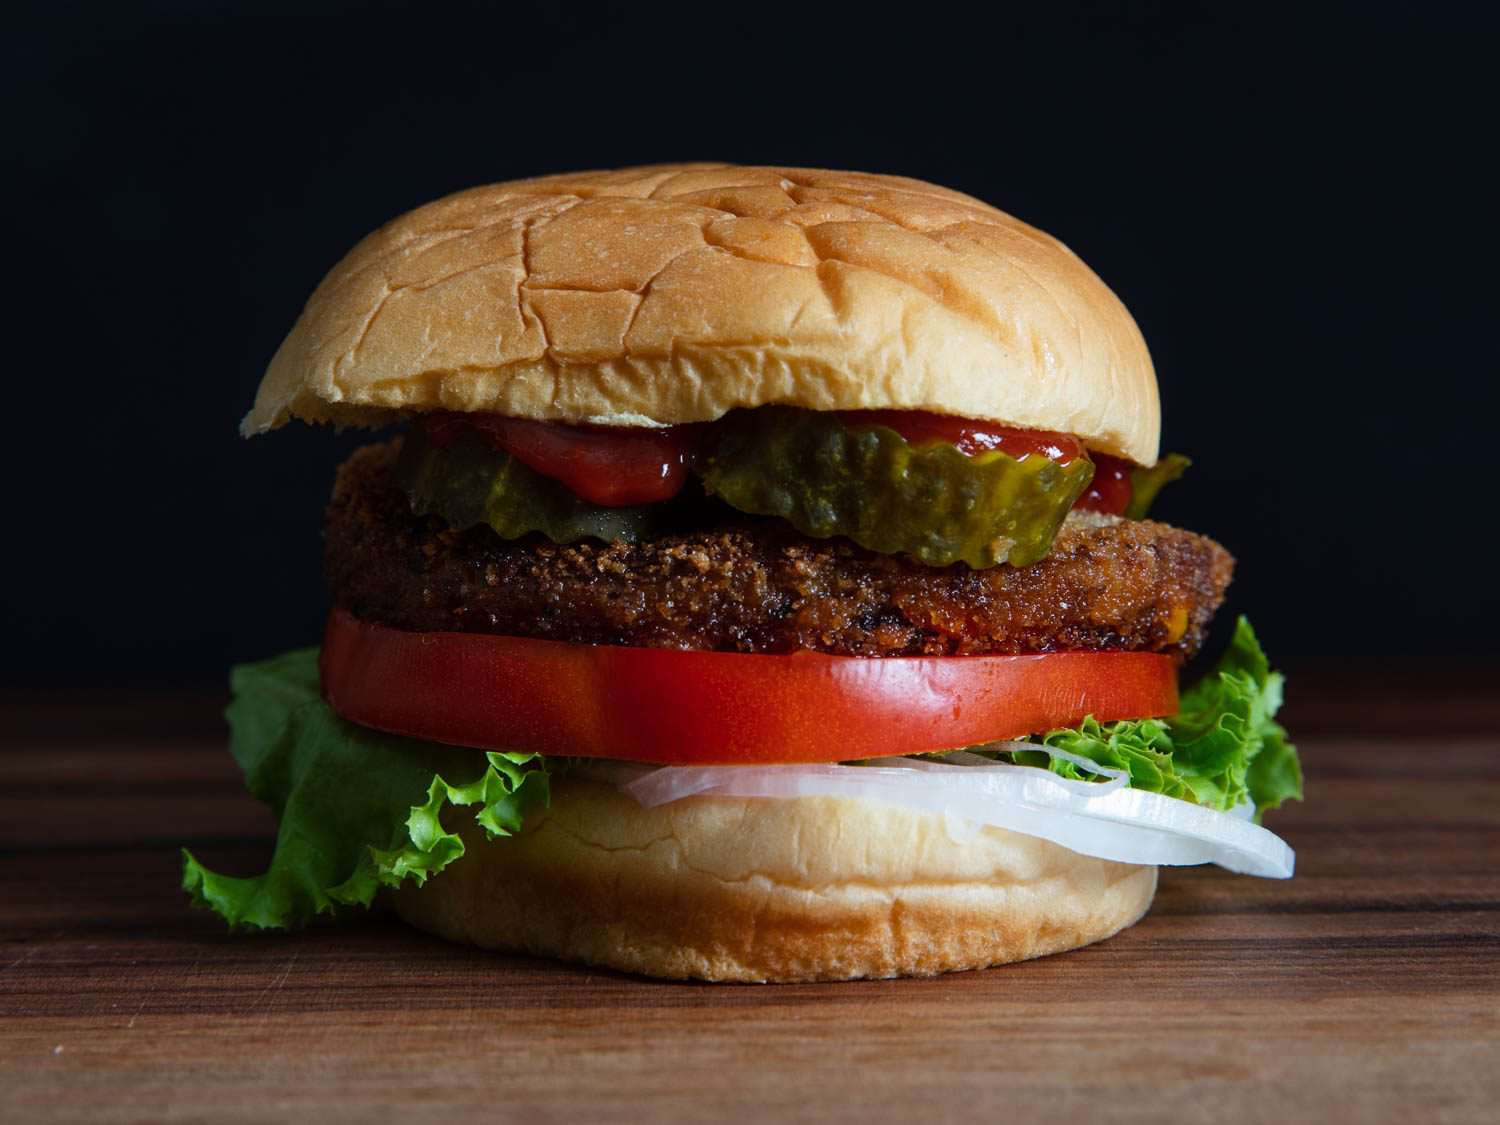 Side view of Trader Joe's Quinoa Cowboy black bean burger in a bun with tomato, onion, pickles, and lettuce